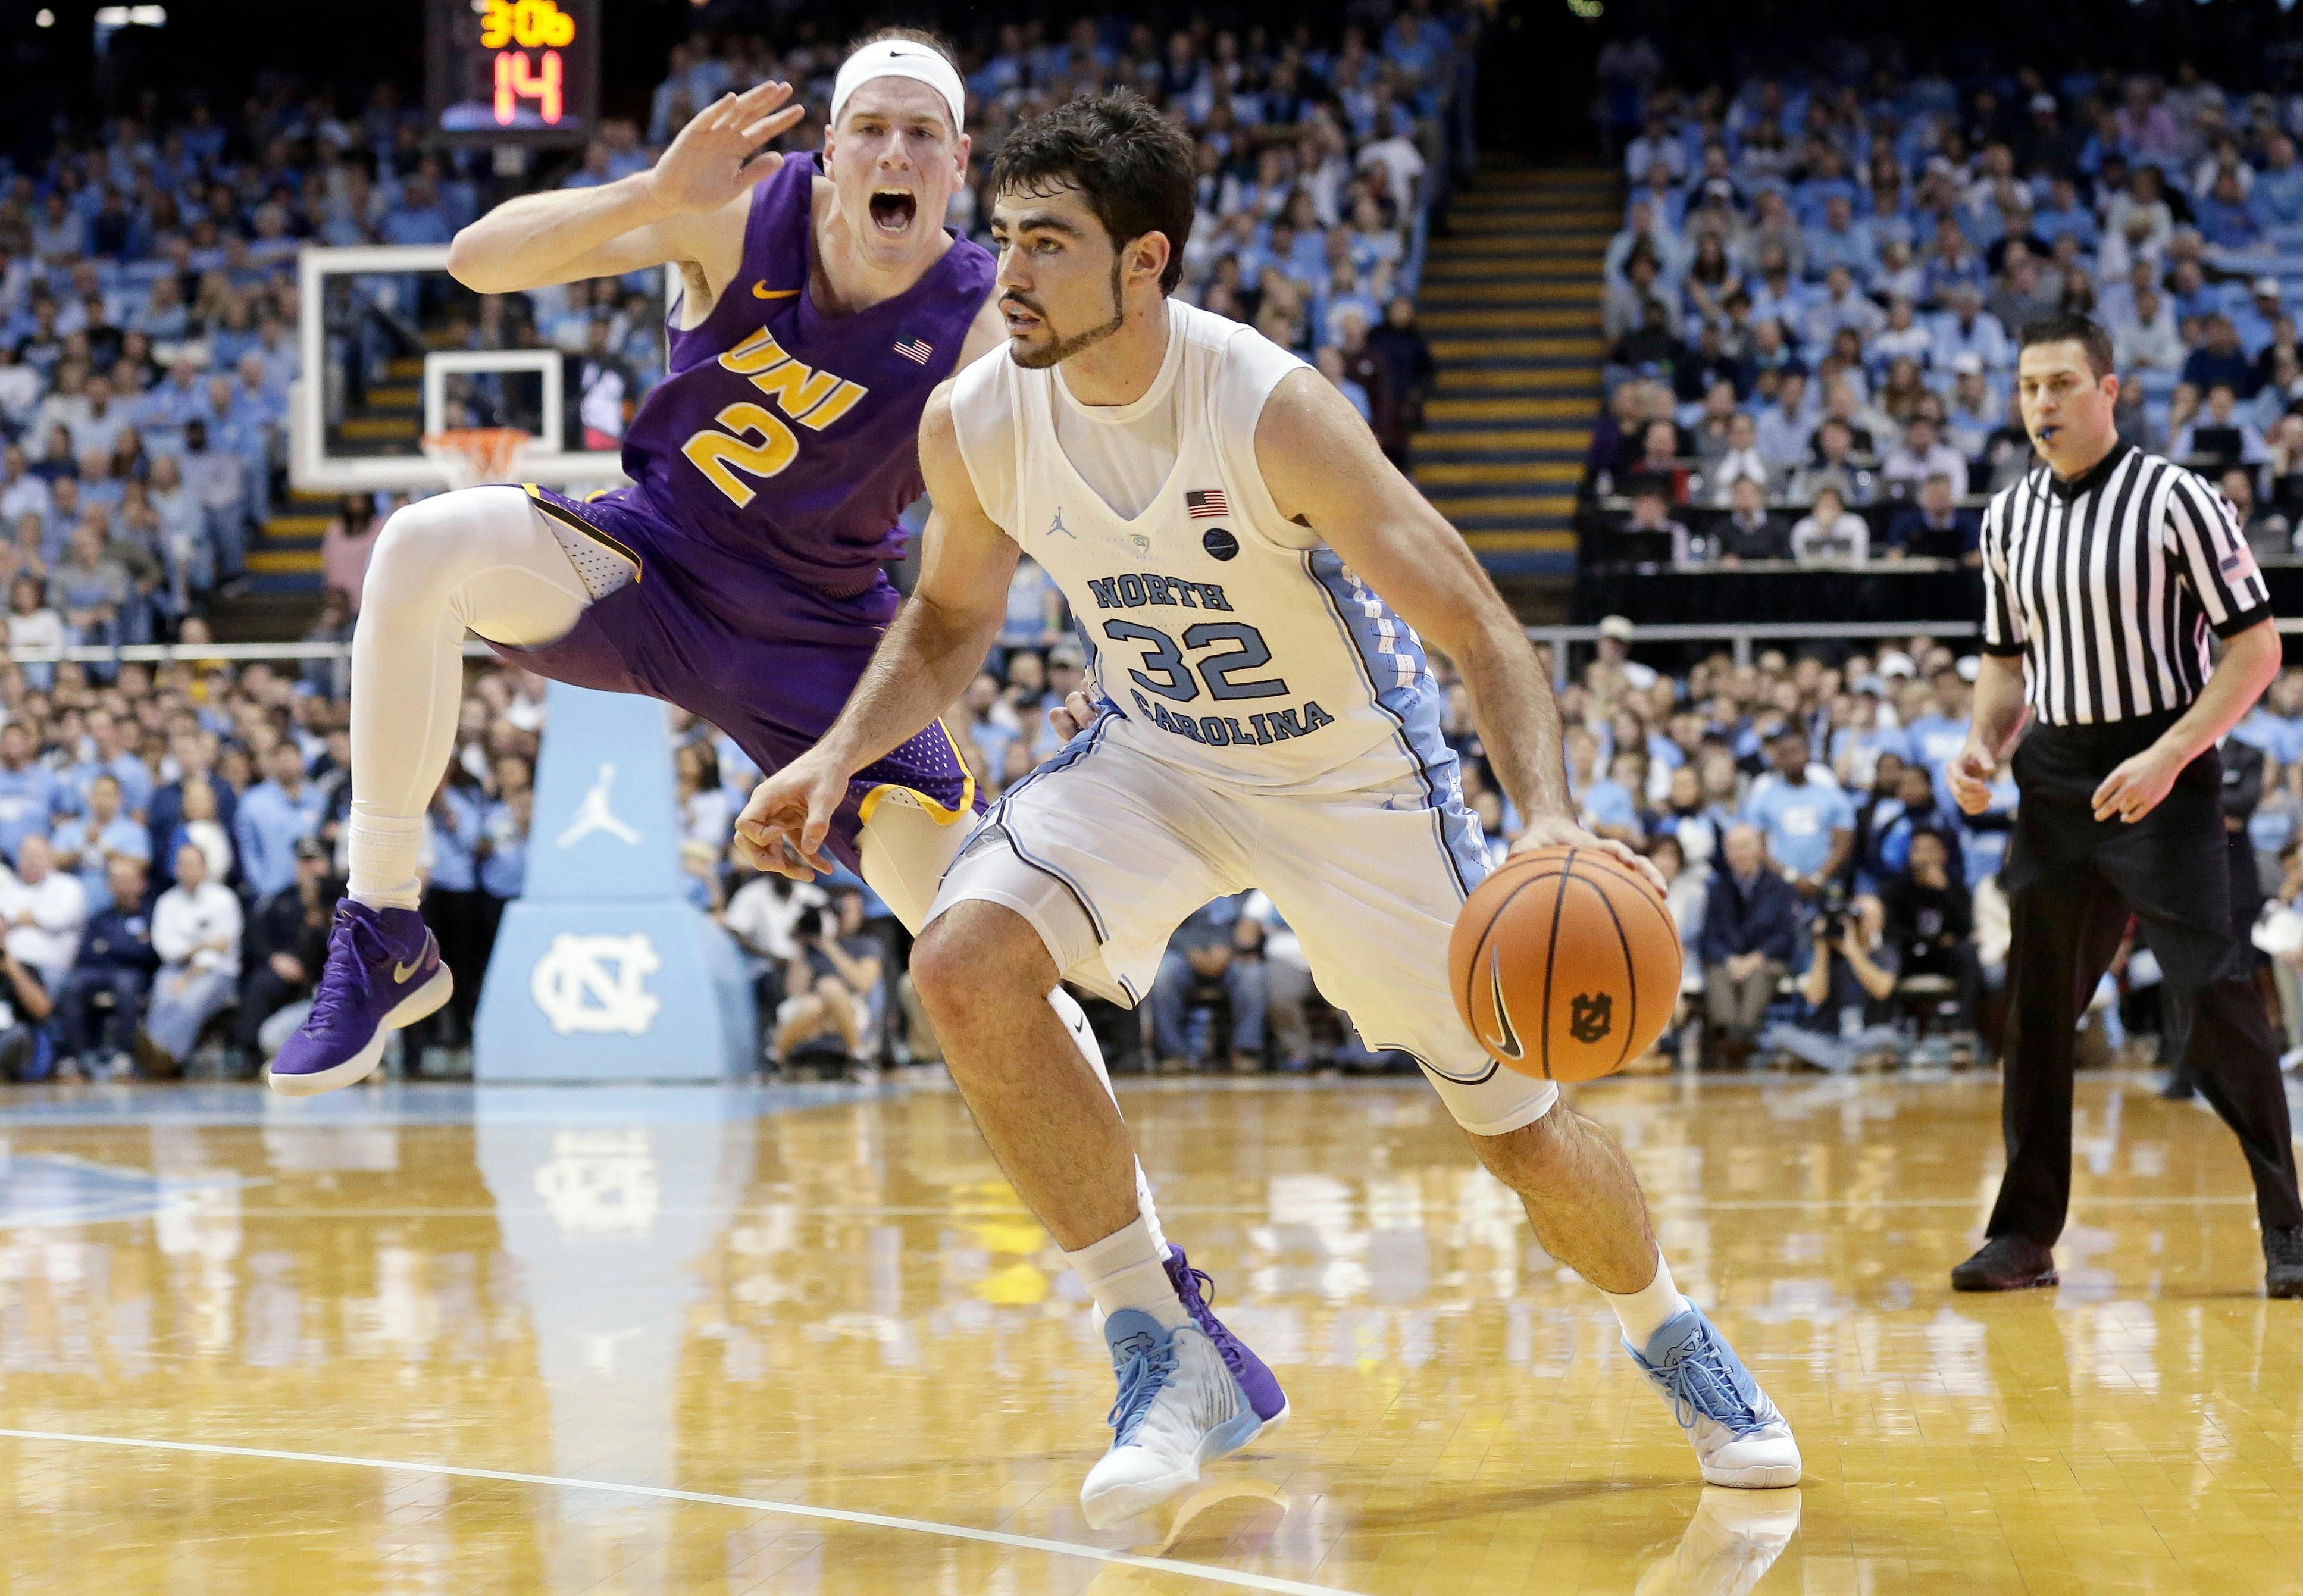 North Carolina's Luke Maye (32) dribbles while Northern Iowa's Klint Carlson (2) defends during the first half of an NCAA college basketball game in Chapel Hill, N.C., Friday, Nov. 10, 2017. (AP Photo/Gerry Broome)